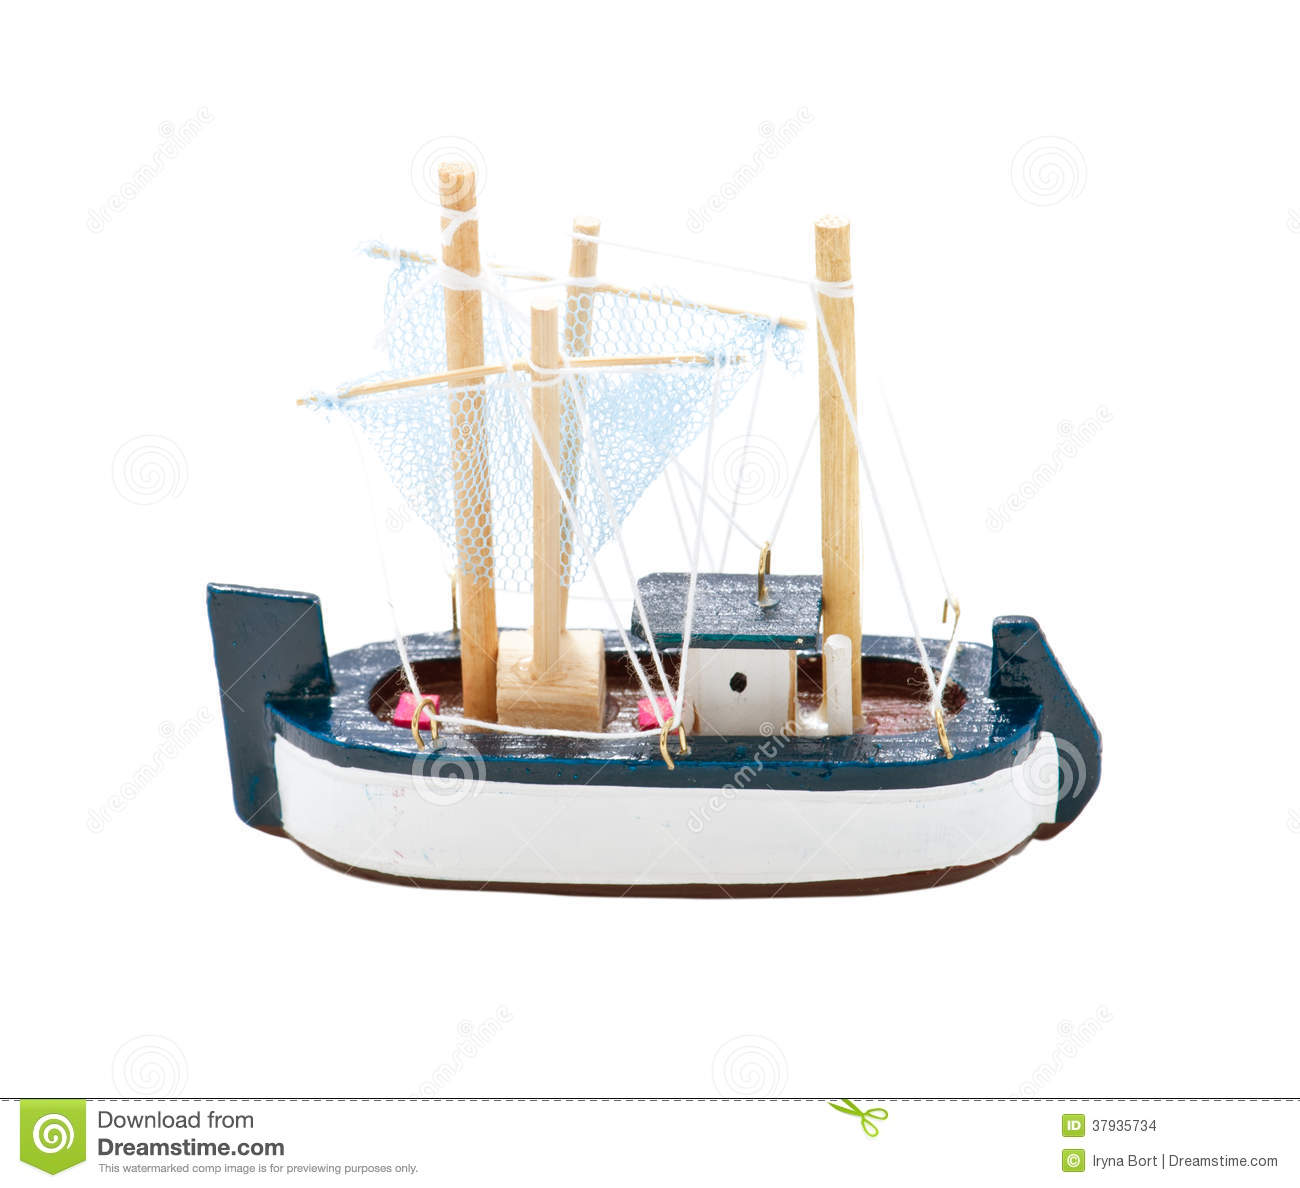 Toy Wooden Sail Boat